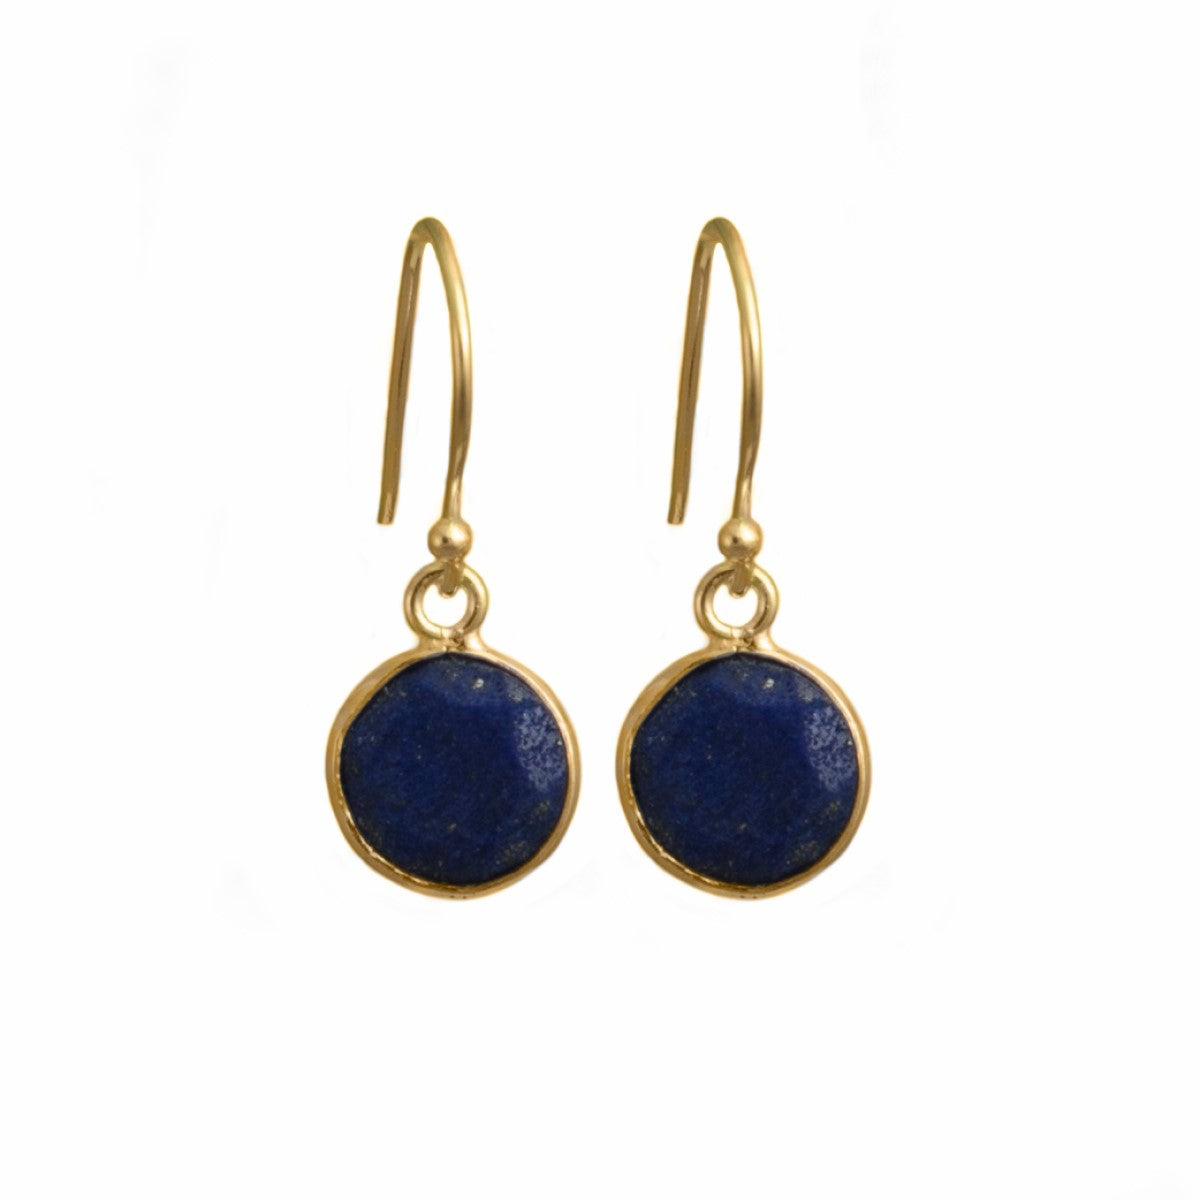 Lapis Lazuli Gemstone Earrings in Gold Plated in Sterling Silver - Round